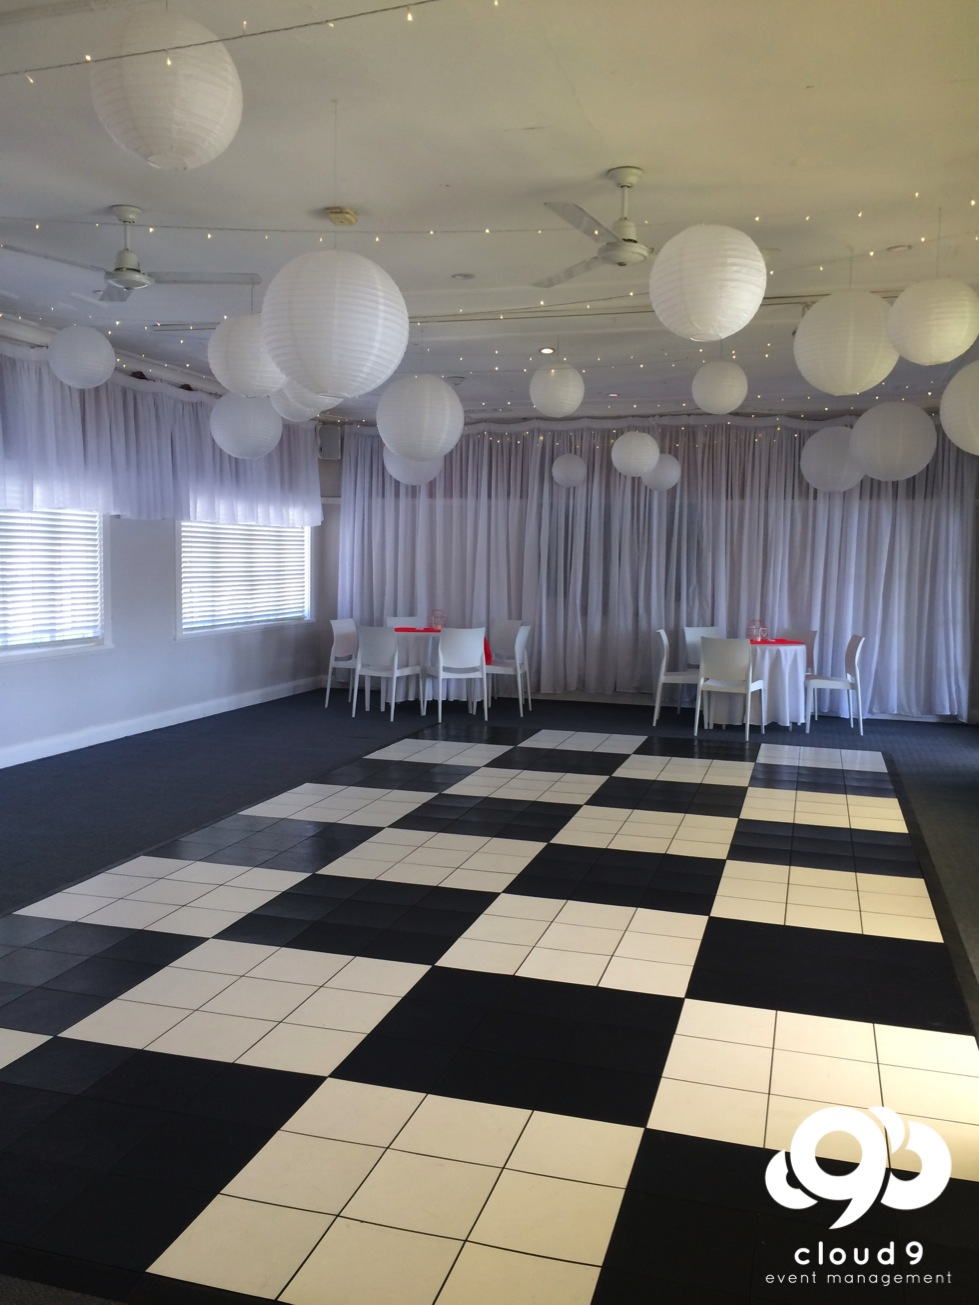 Black & White Check Dance Floor - wedding reception styling